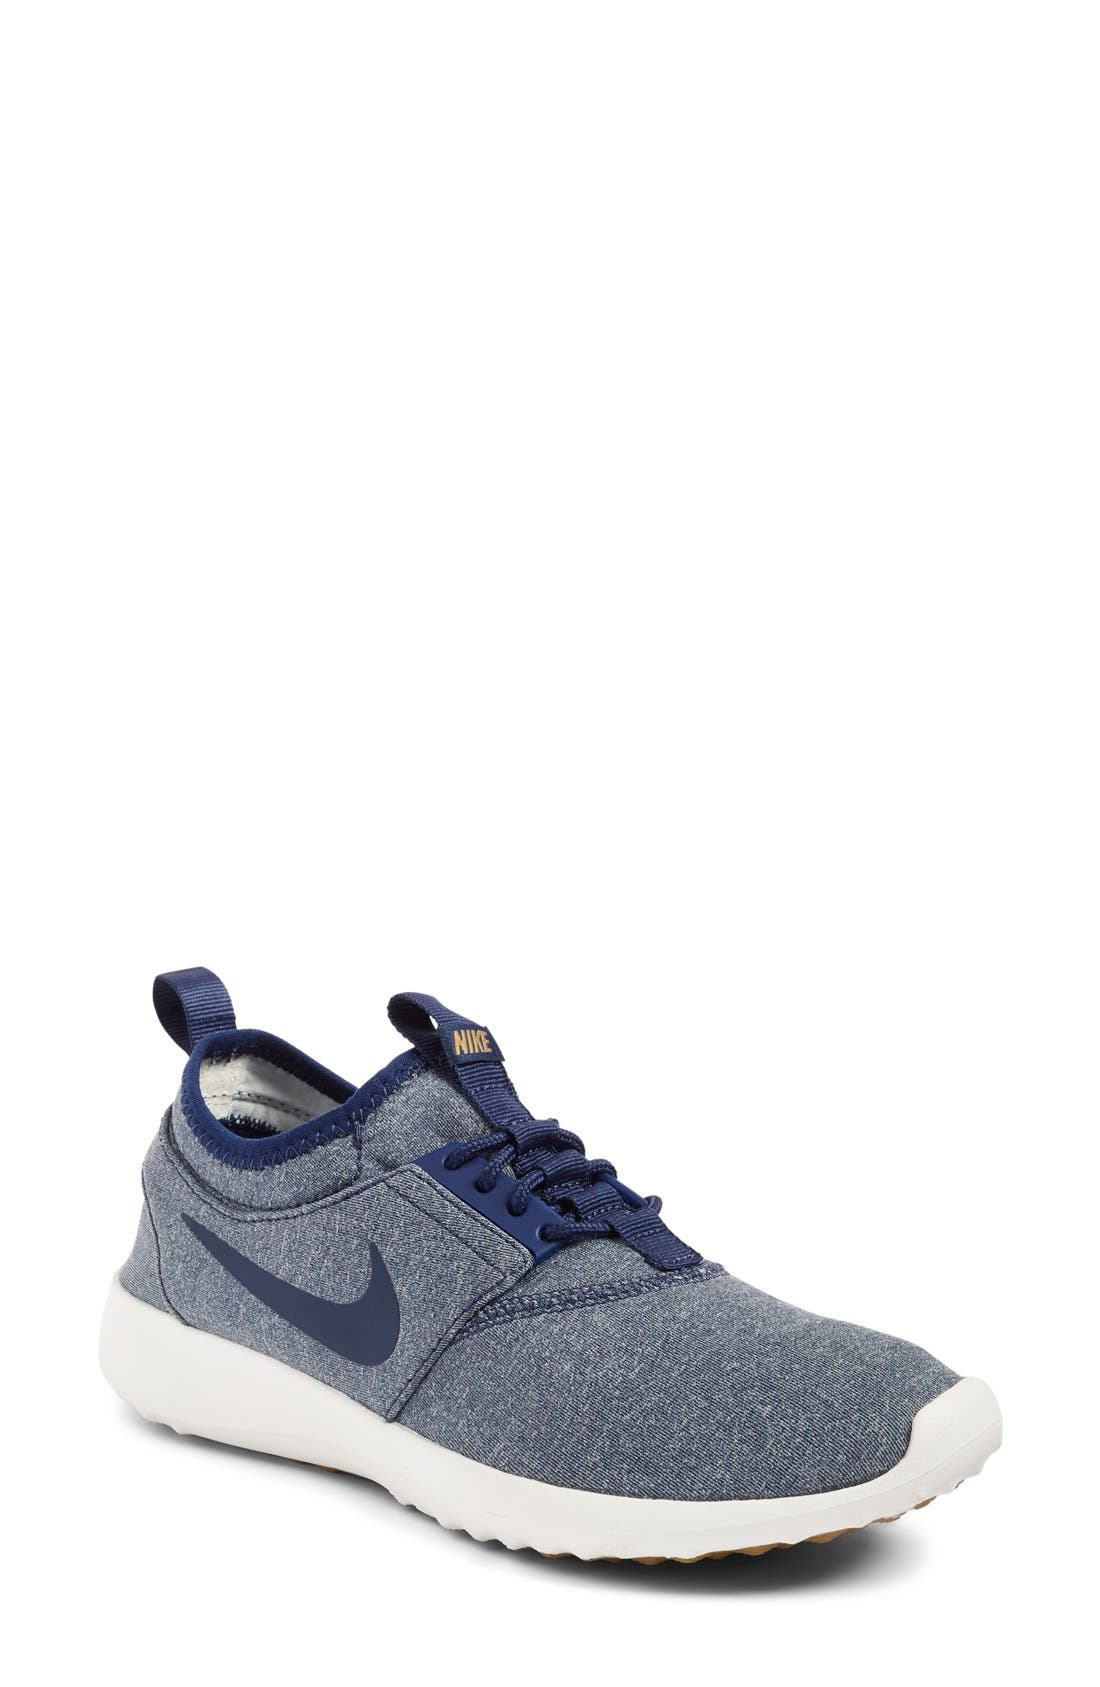 Alternate Image 1 Selected - Nike Juvenate SE Sneaker